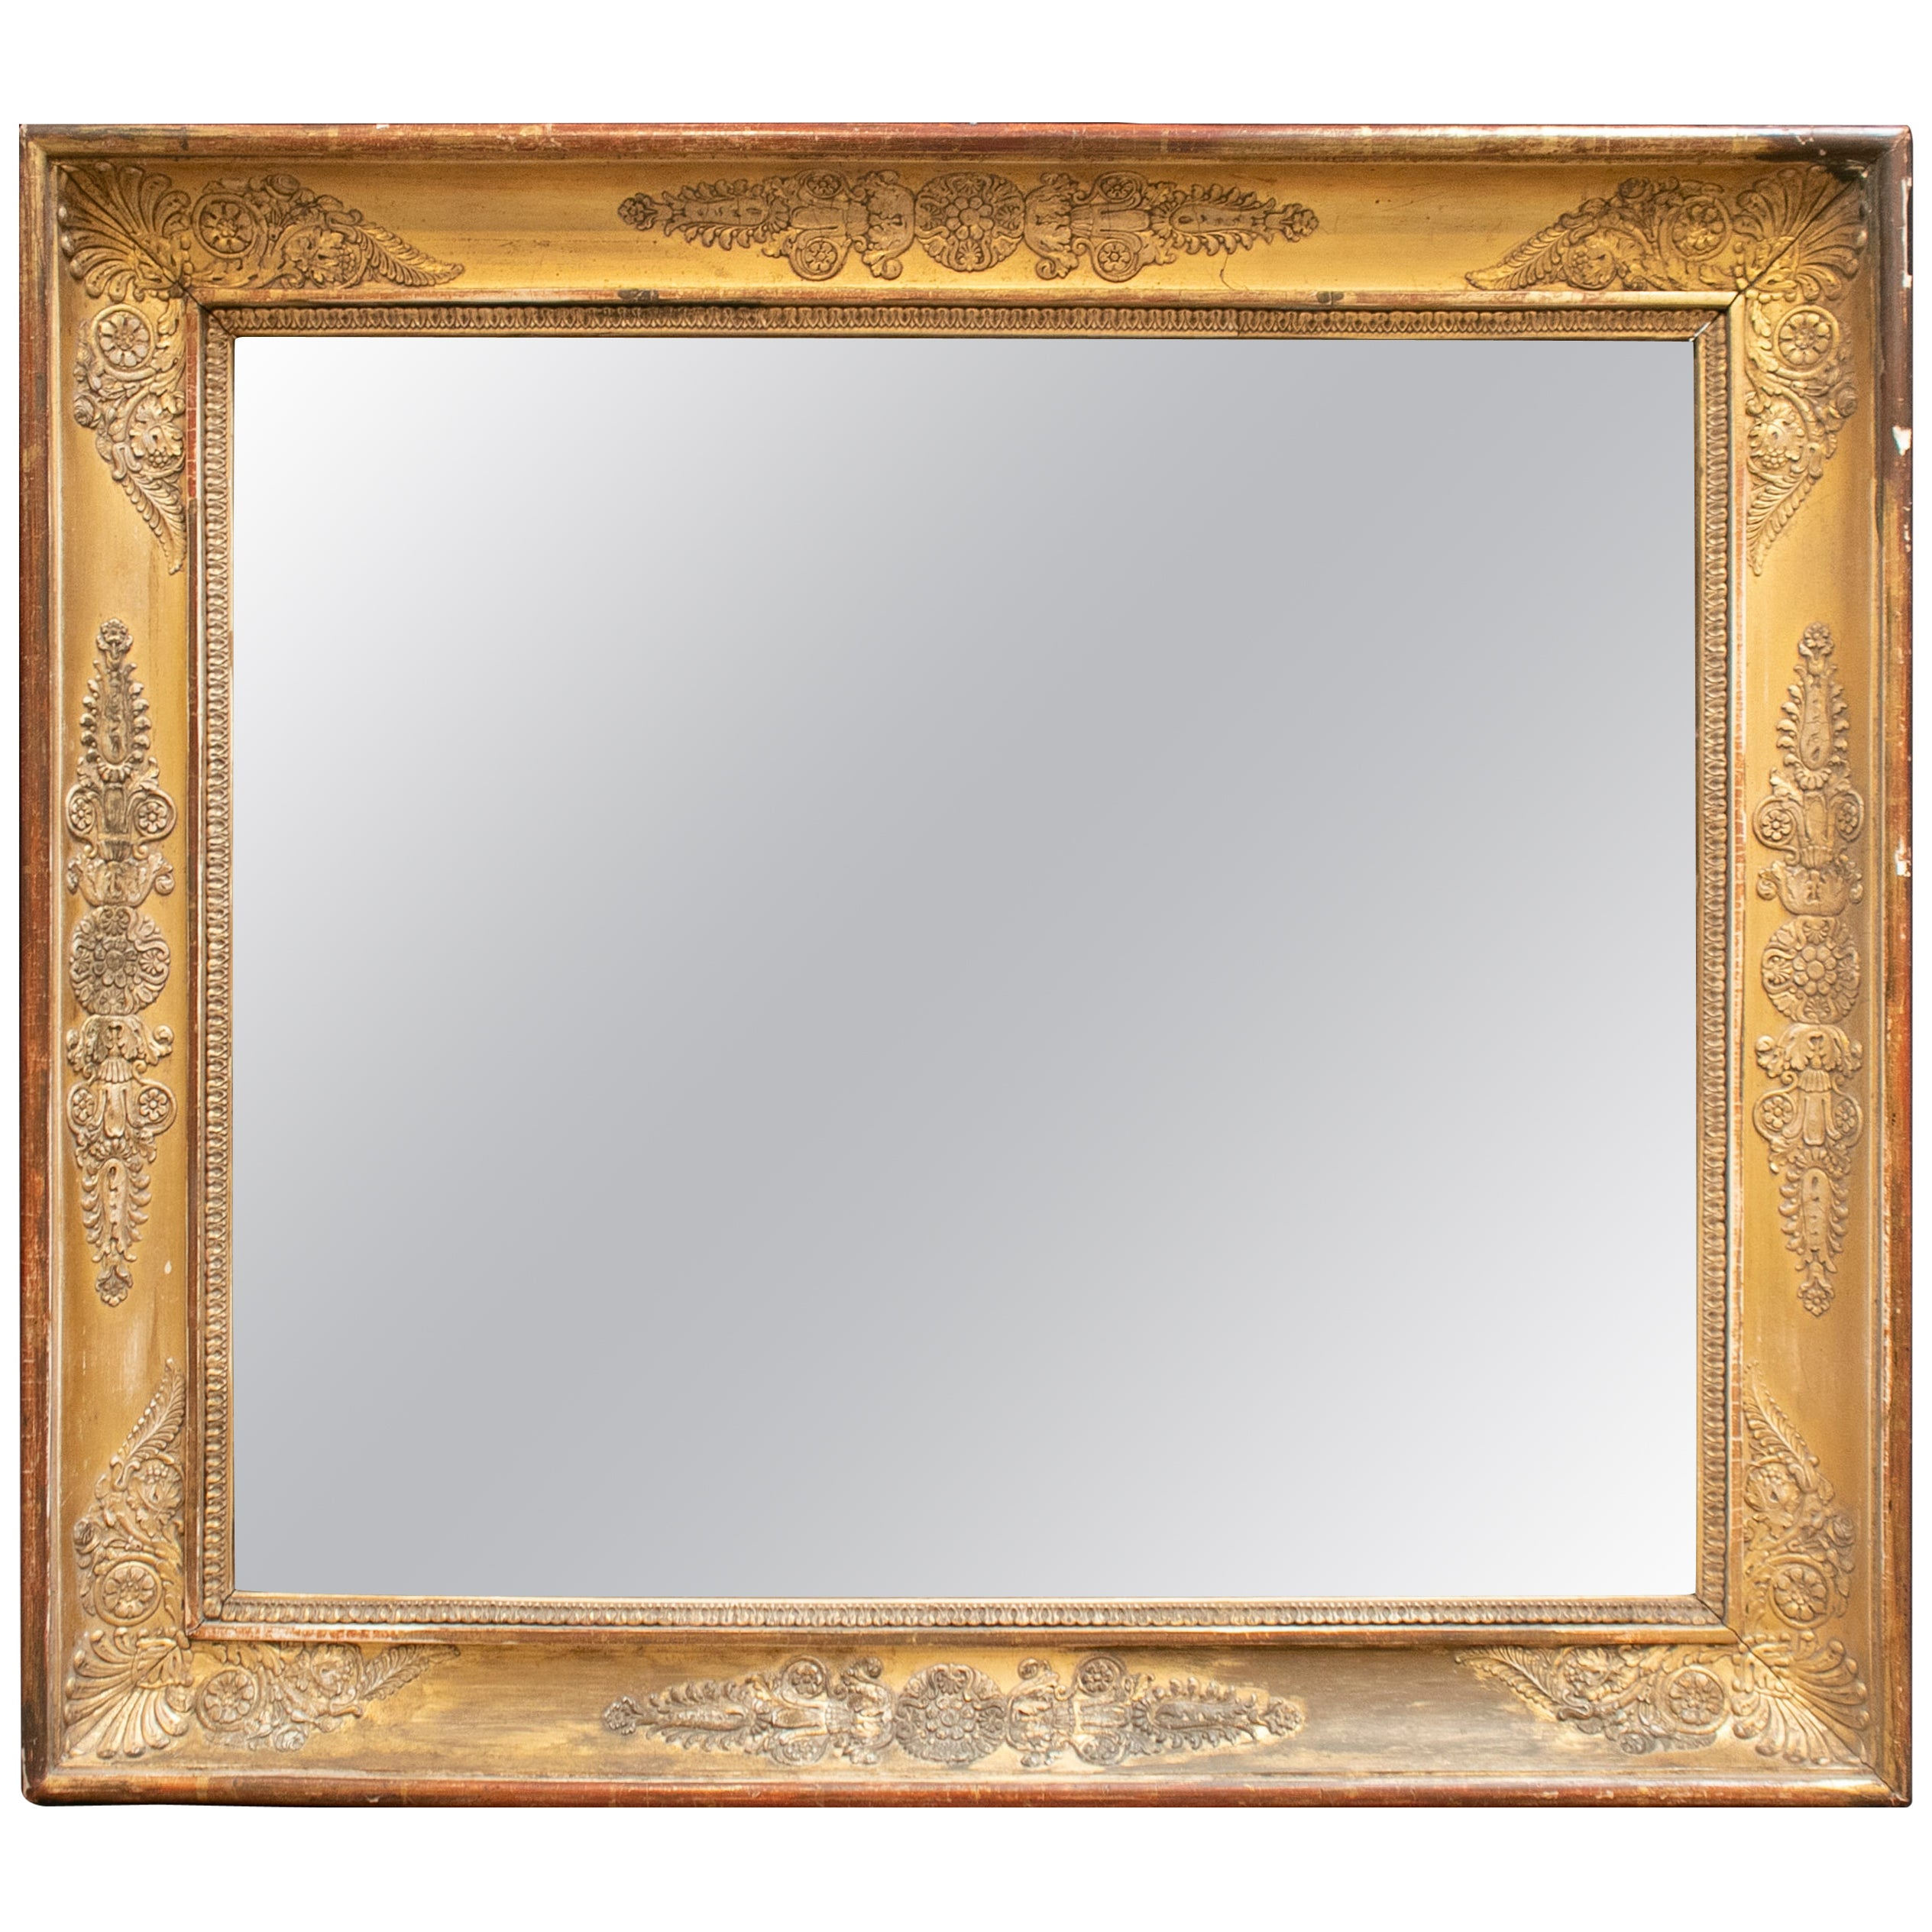 19th Century French Mirror with Wooden Flower Decorated Golden Frame